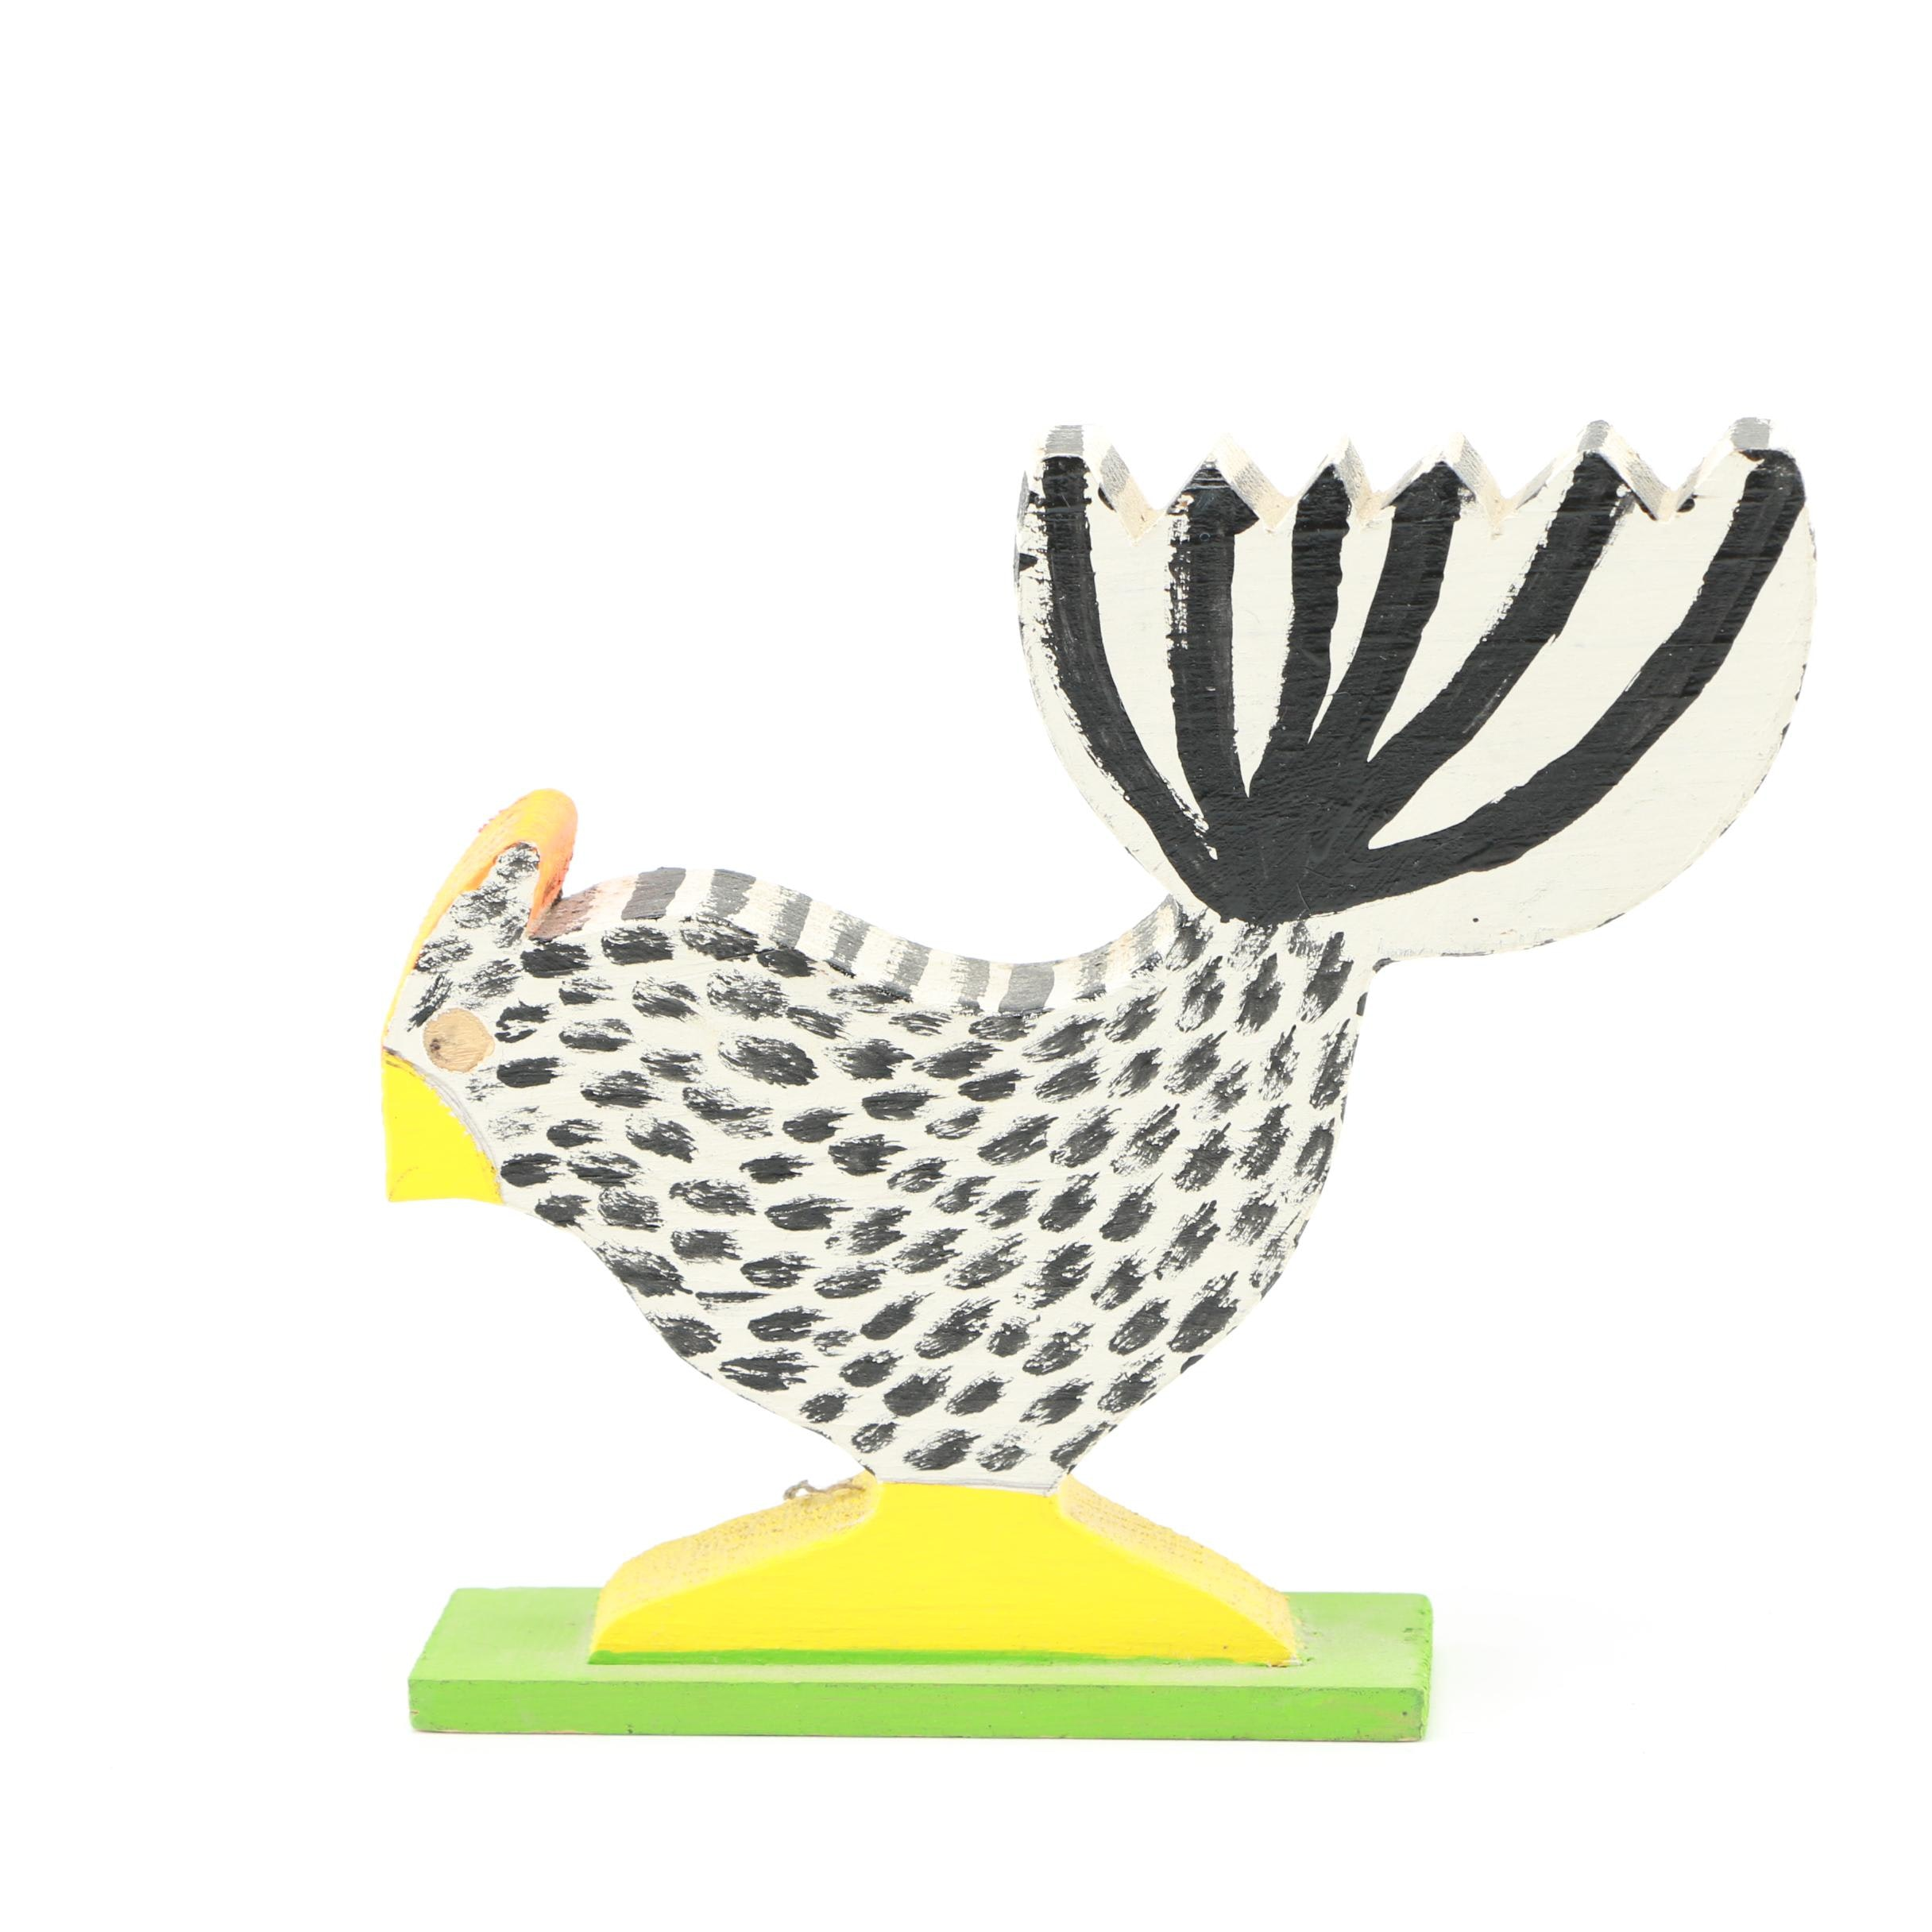 Marvin Finn Painted Wooden Folk Art Sculpture of Rooster